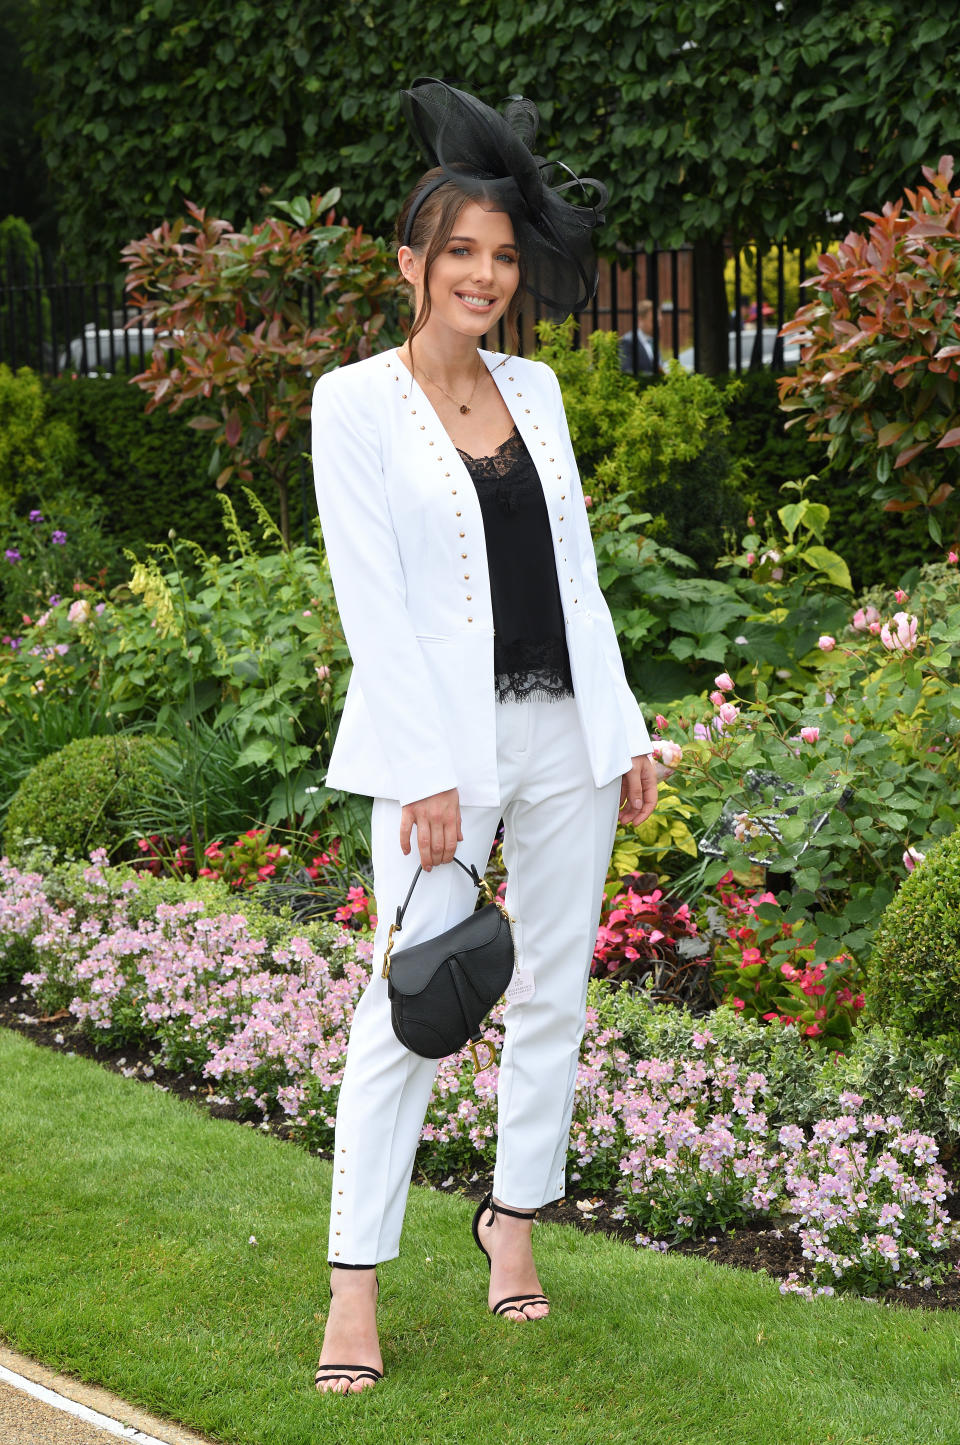 ASCOT, ENGLAND - JUNE 19: Helen Flanagan attends day two of Royal Ascot at Ascot Racecourse on June 19, 2019 in Ascot, England. (Photo by Karwai Tang/WireImage)